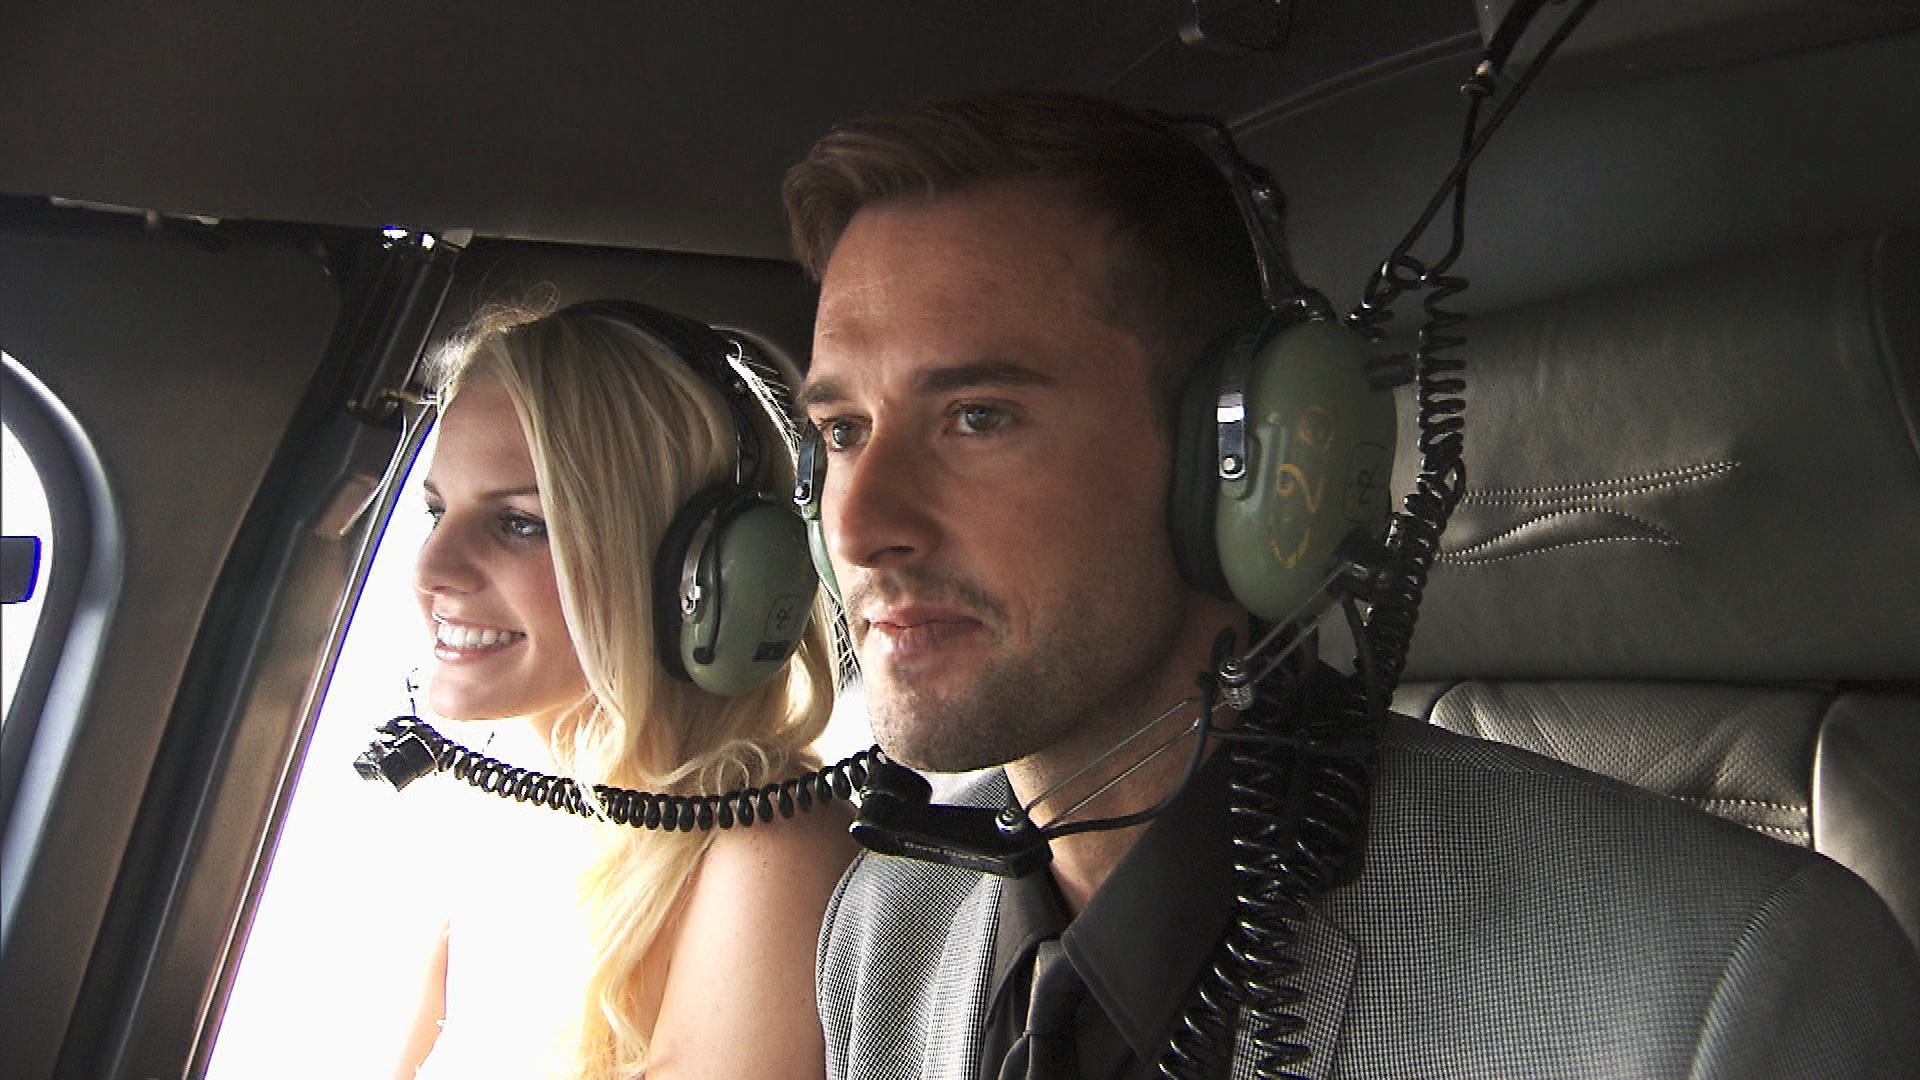 A helicopter ride